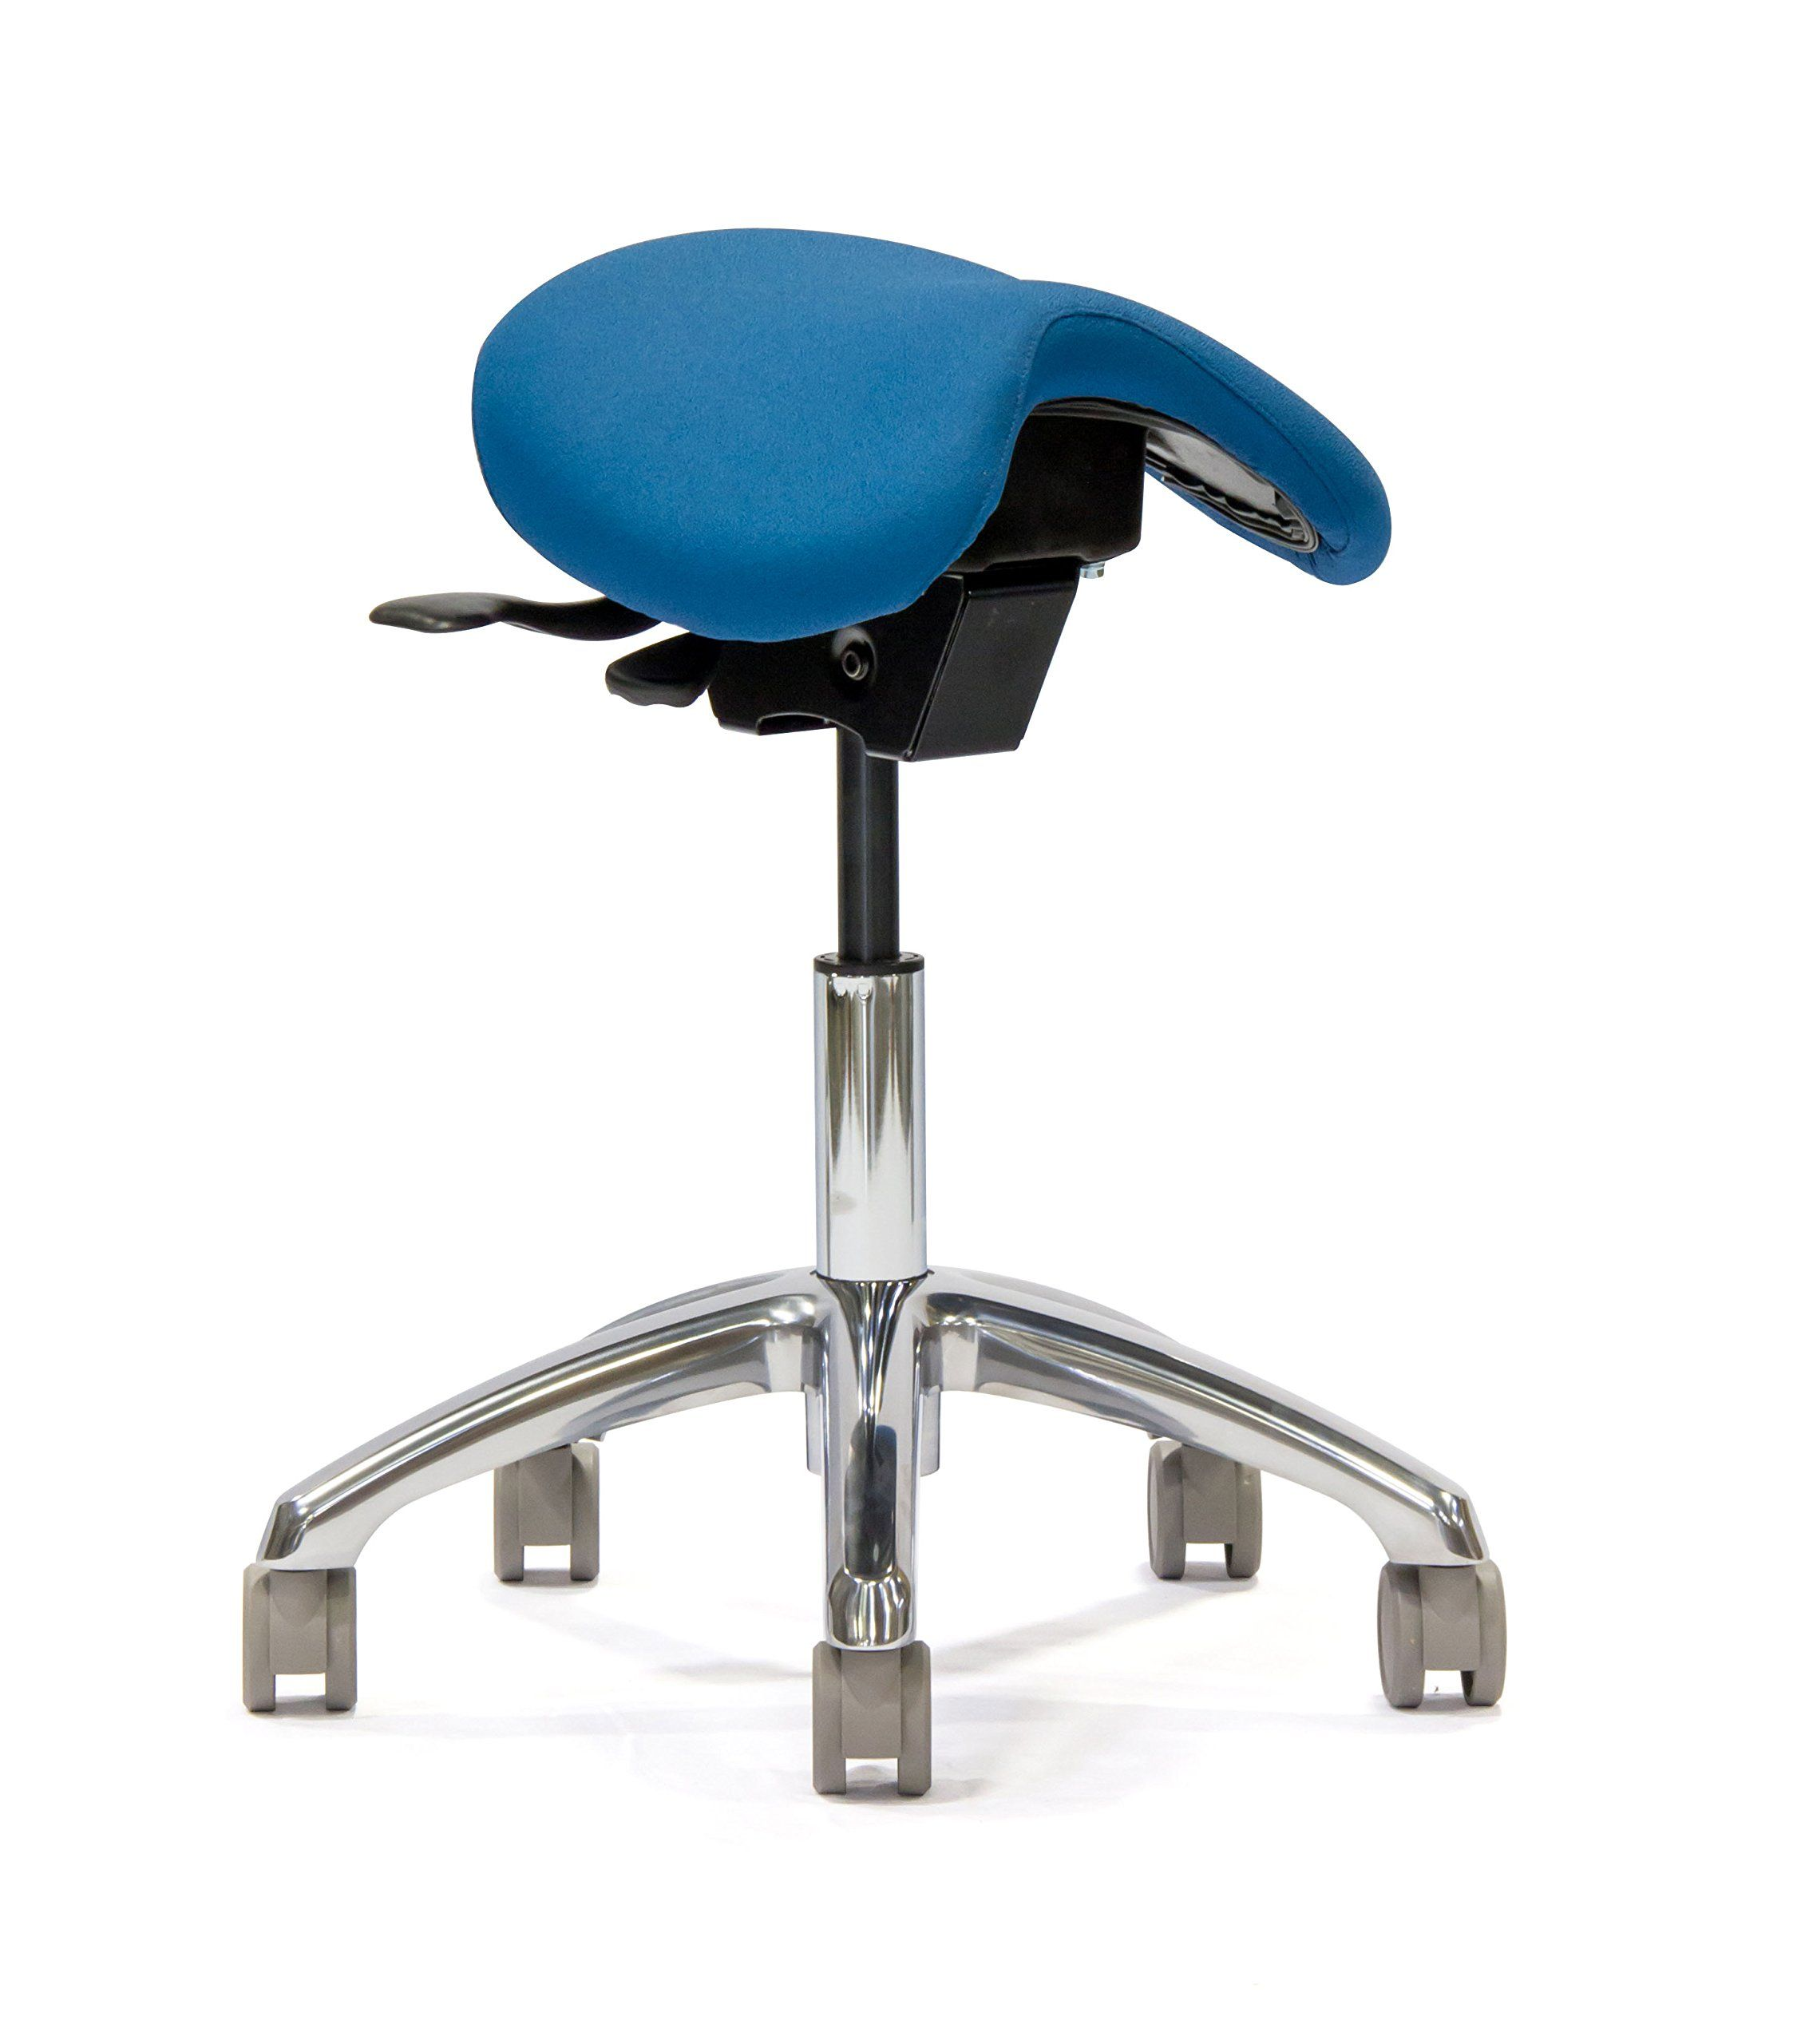 ergonomic chair betterposture saddle chair jobri. Amazon.com : English Saddle Office Products Ergonomic Chair Betterposture Jobri E